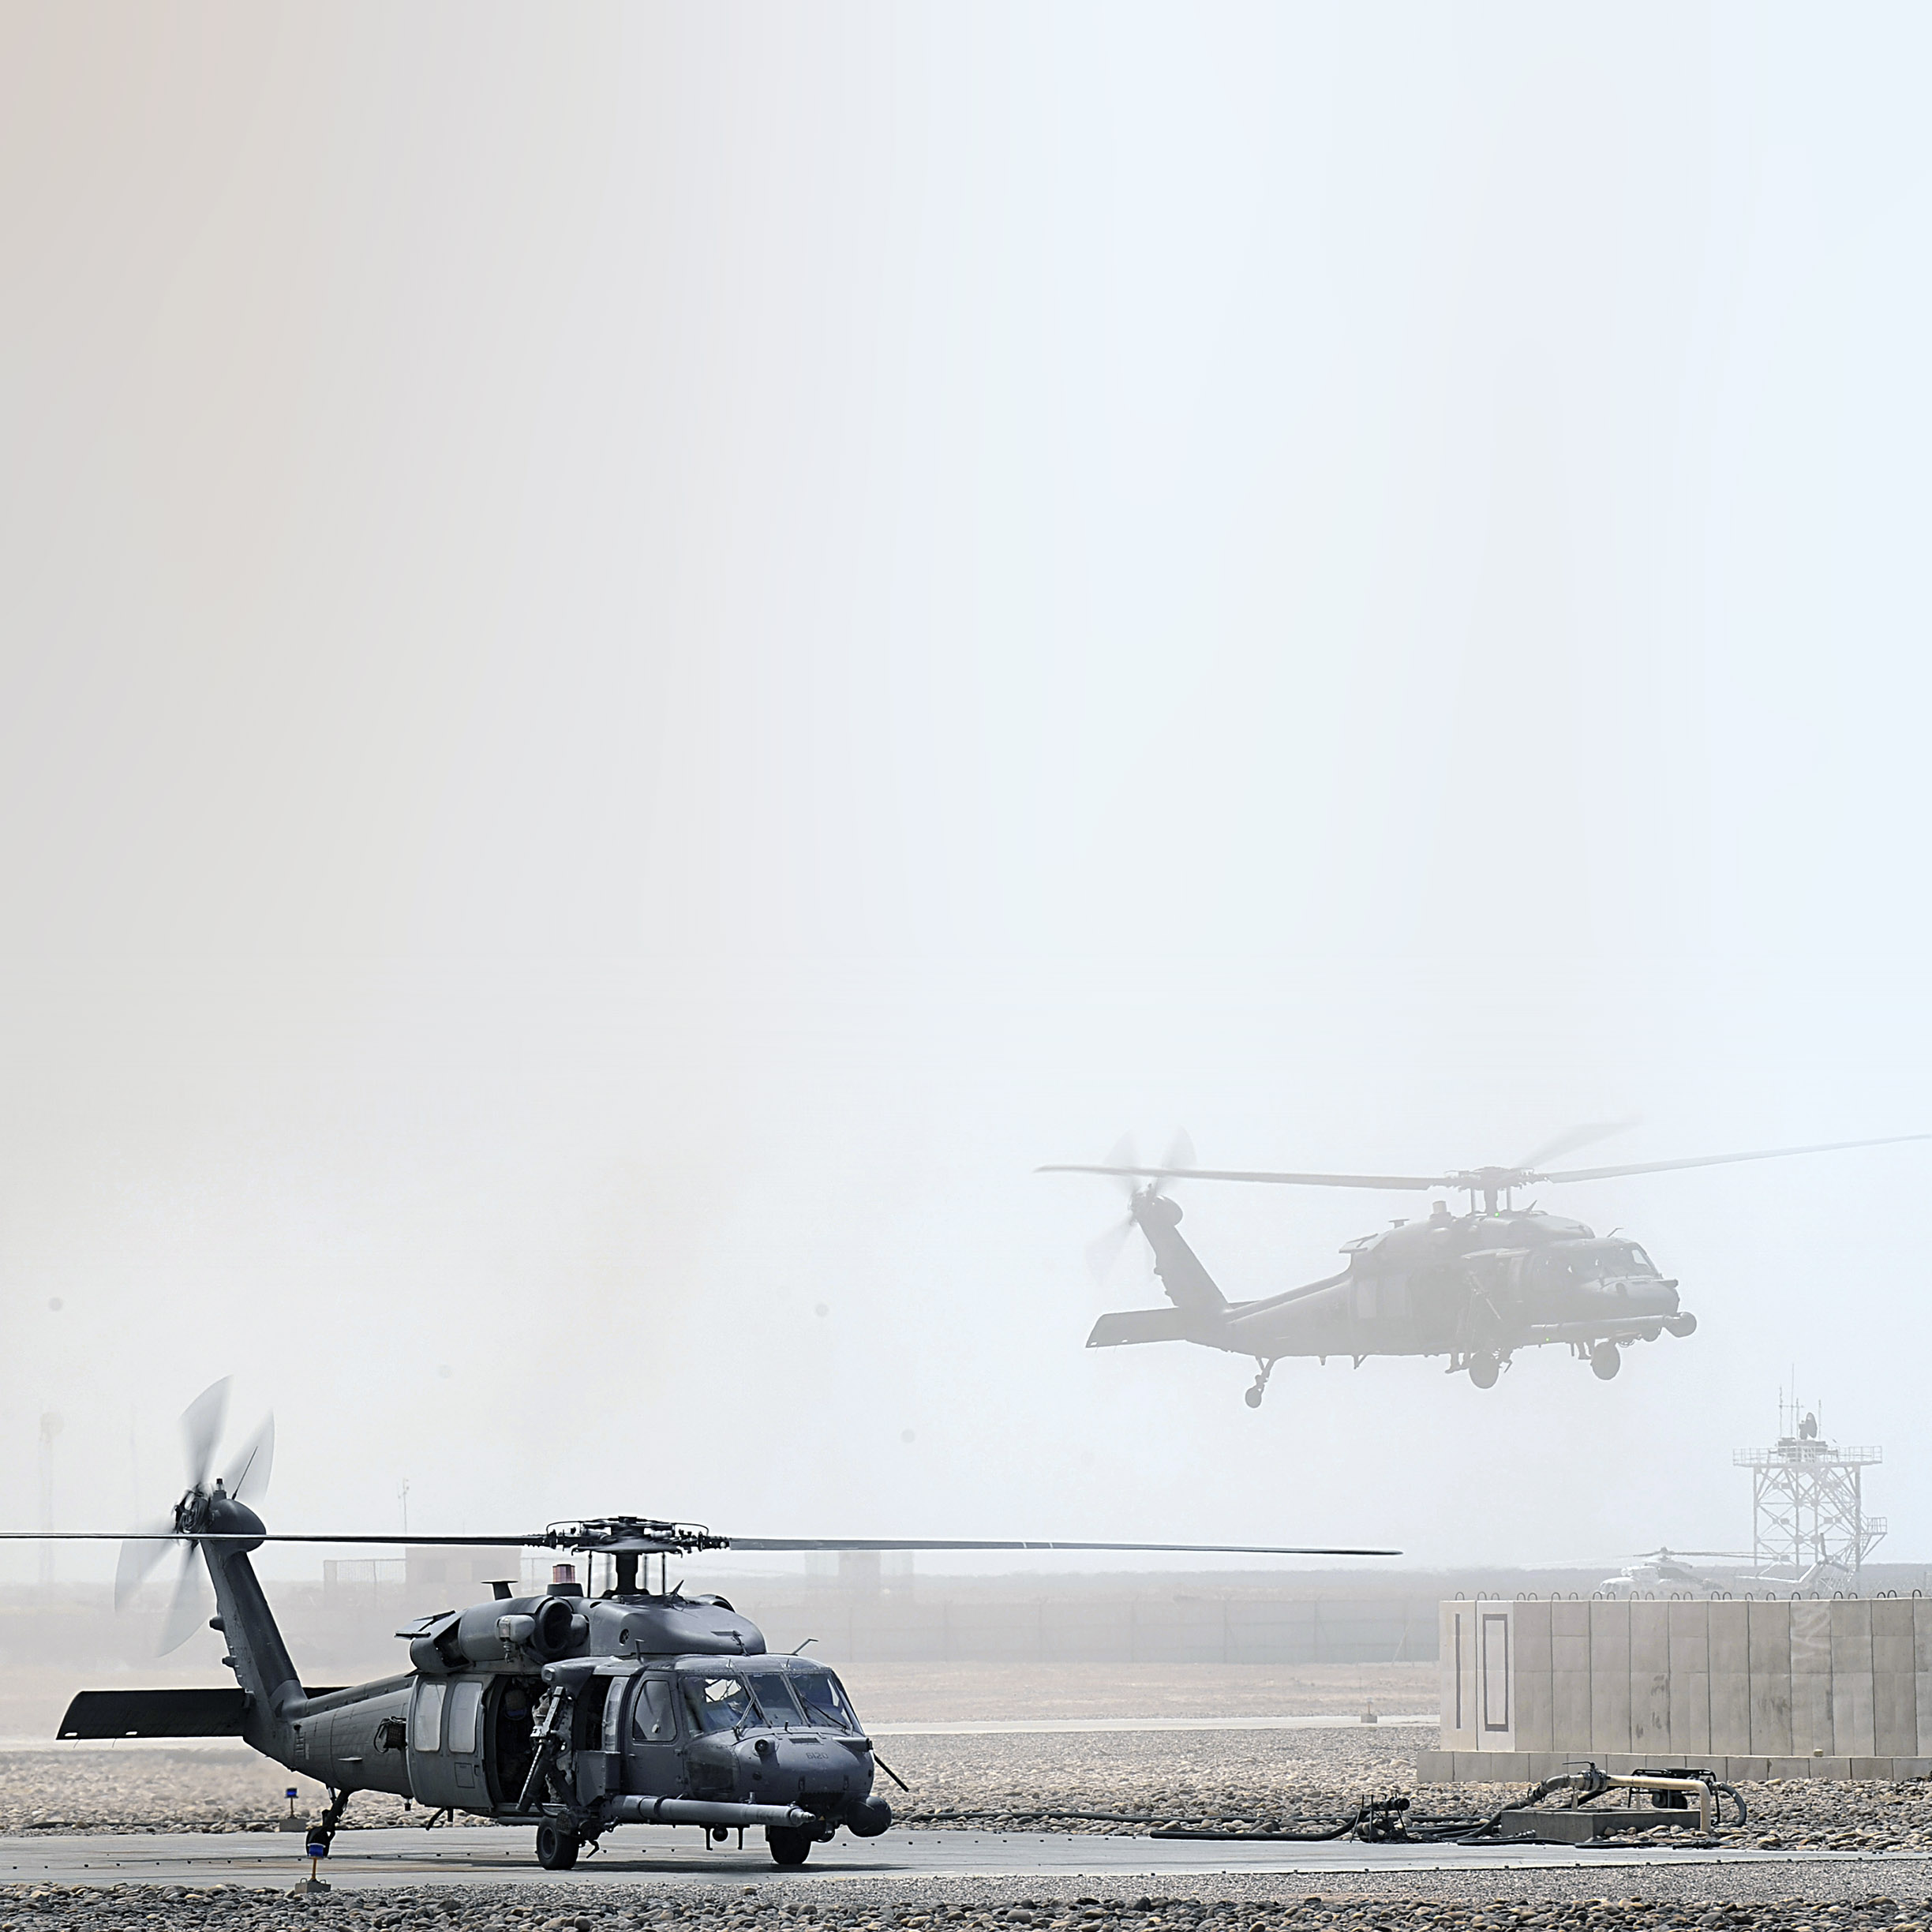 Flight engineers: Critical component to combat search, rescue mission